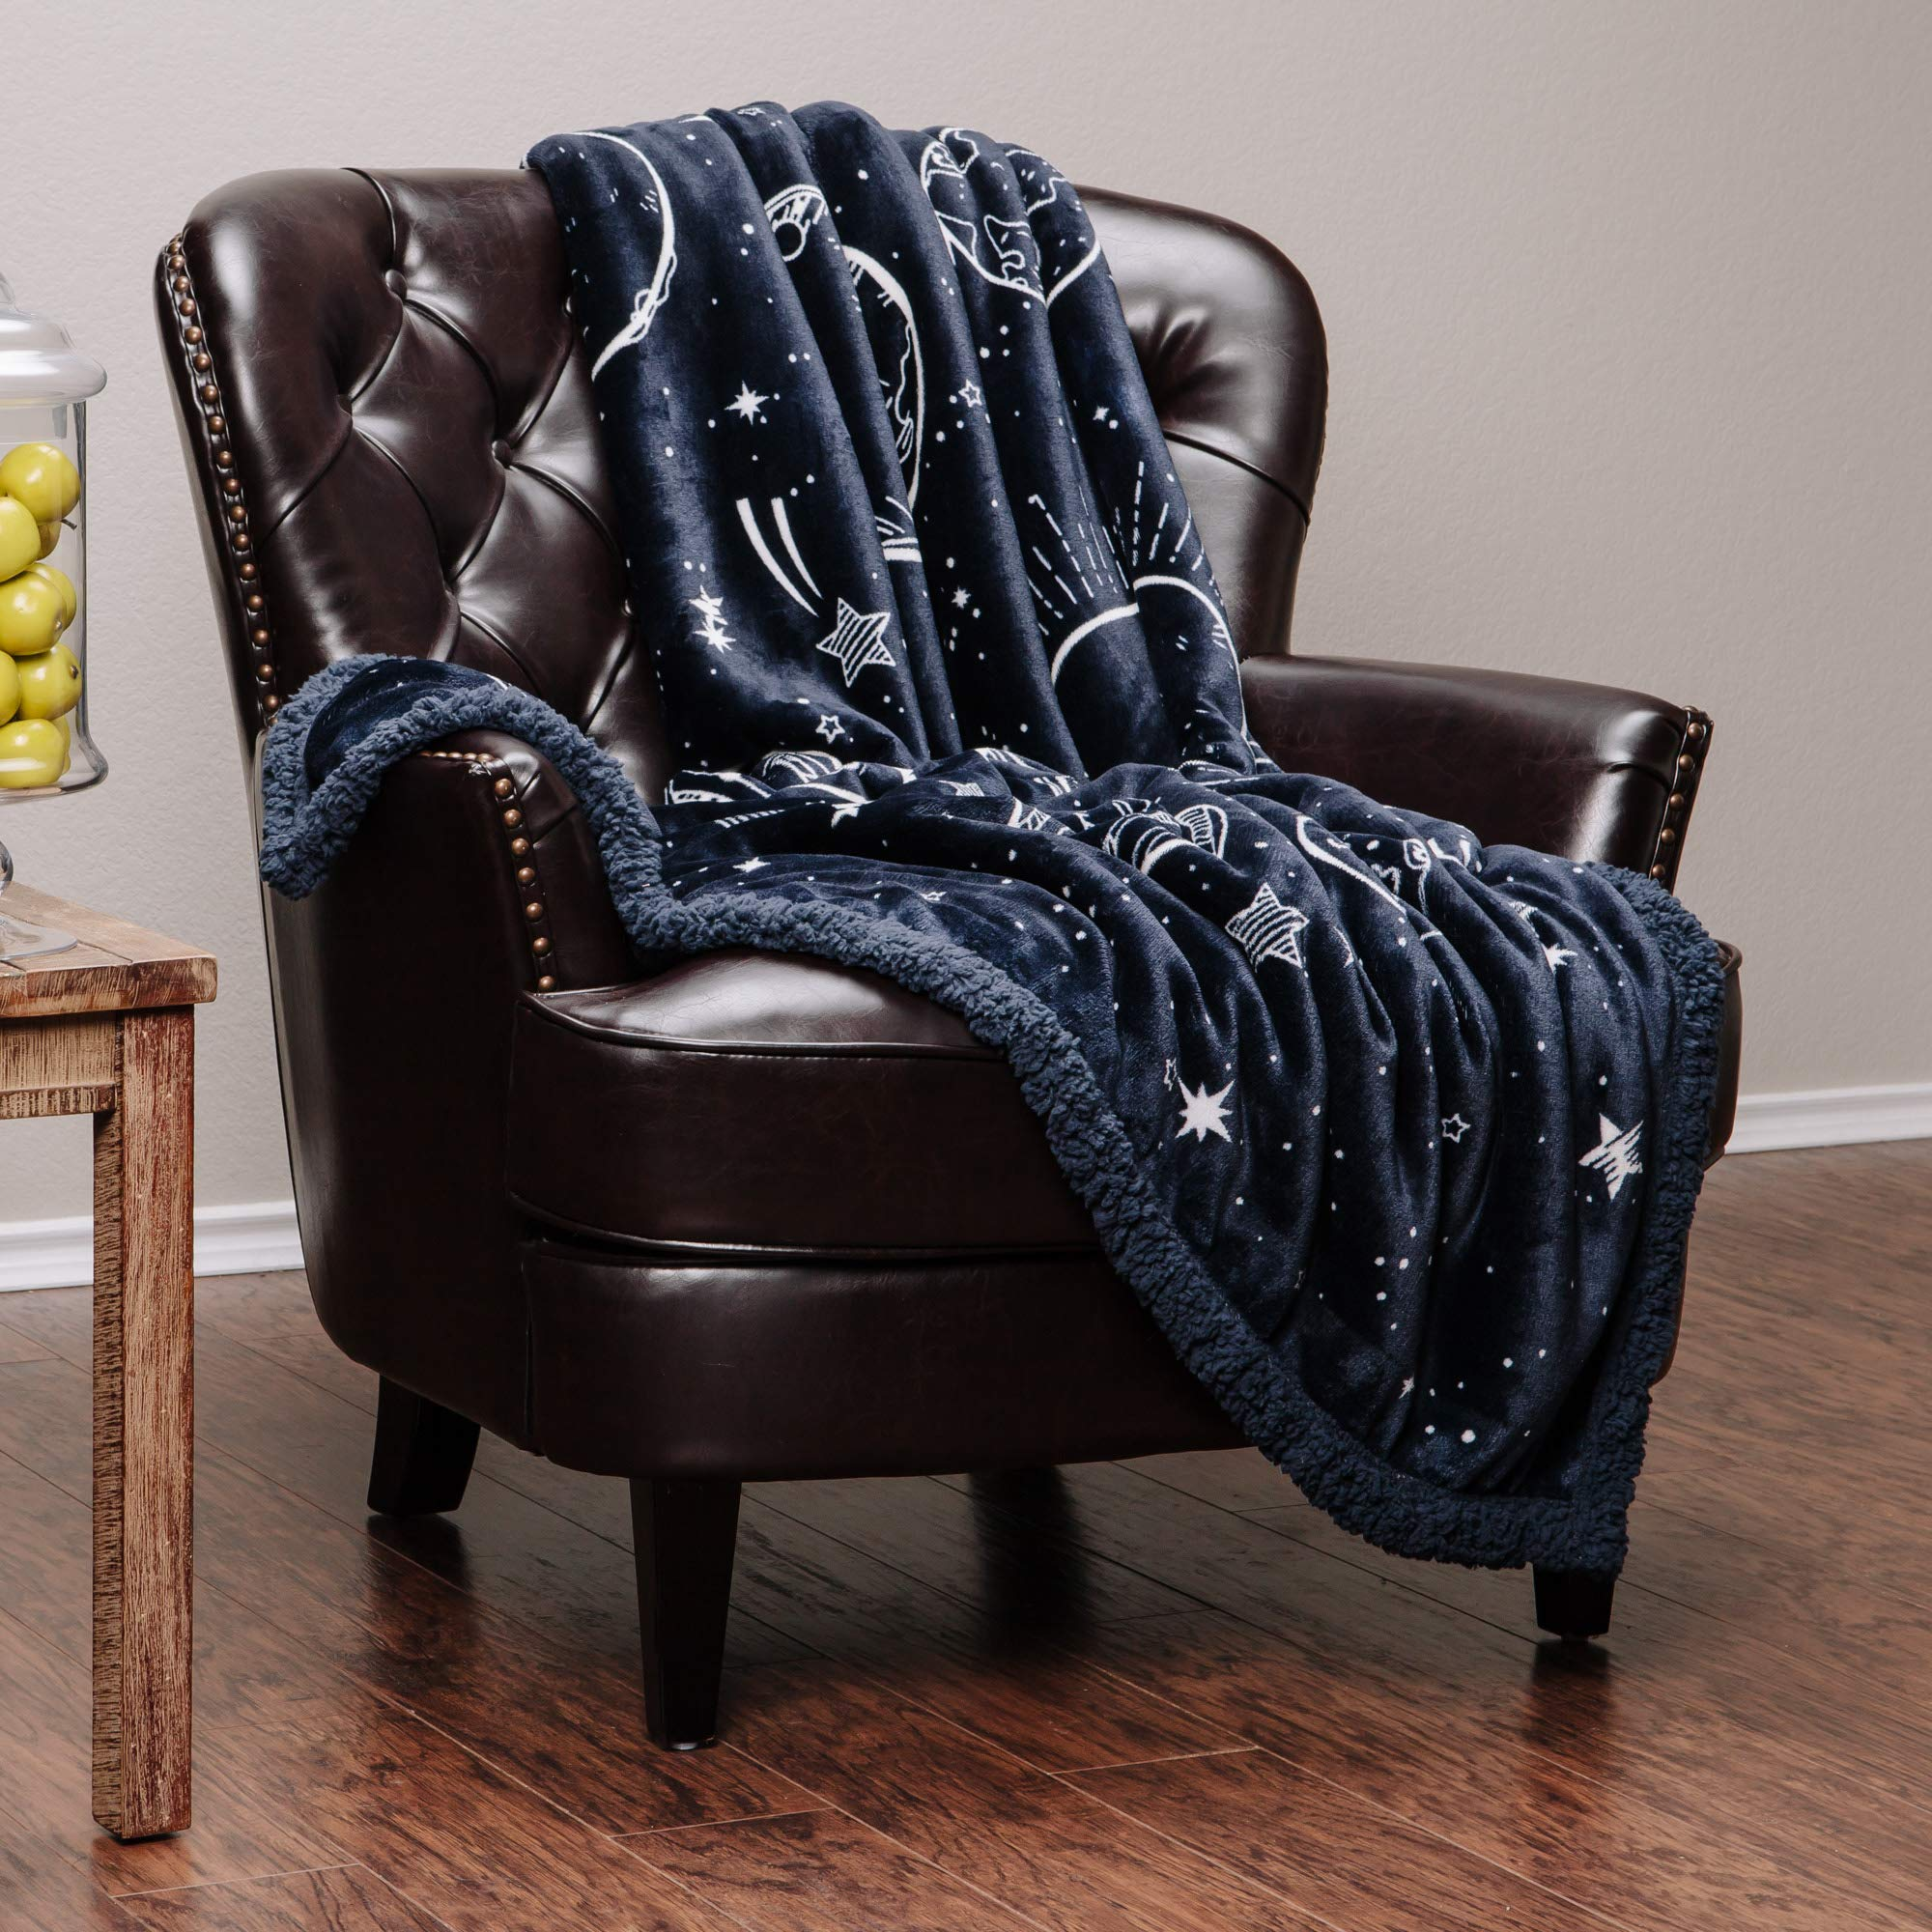 Chanasya Super Soft Solar System Galaxy Star Space Print Throw Blanket| Featuring All Nine Planets Orbiting The Sun Including Pluto Dark Navy Charcoal Reversible Blanket for Bed Couch Chair -DarkNavy